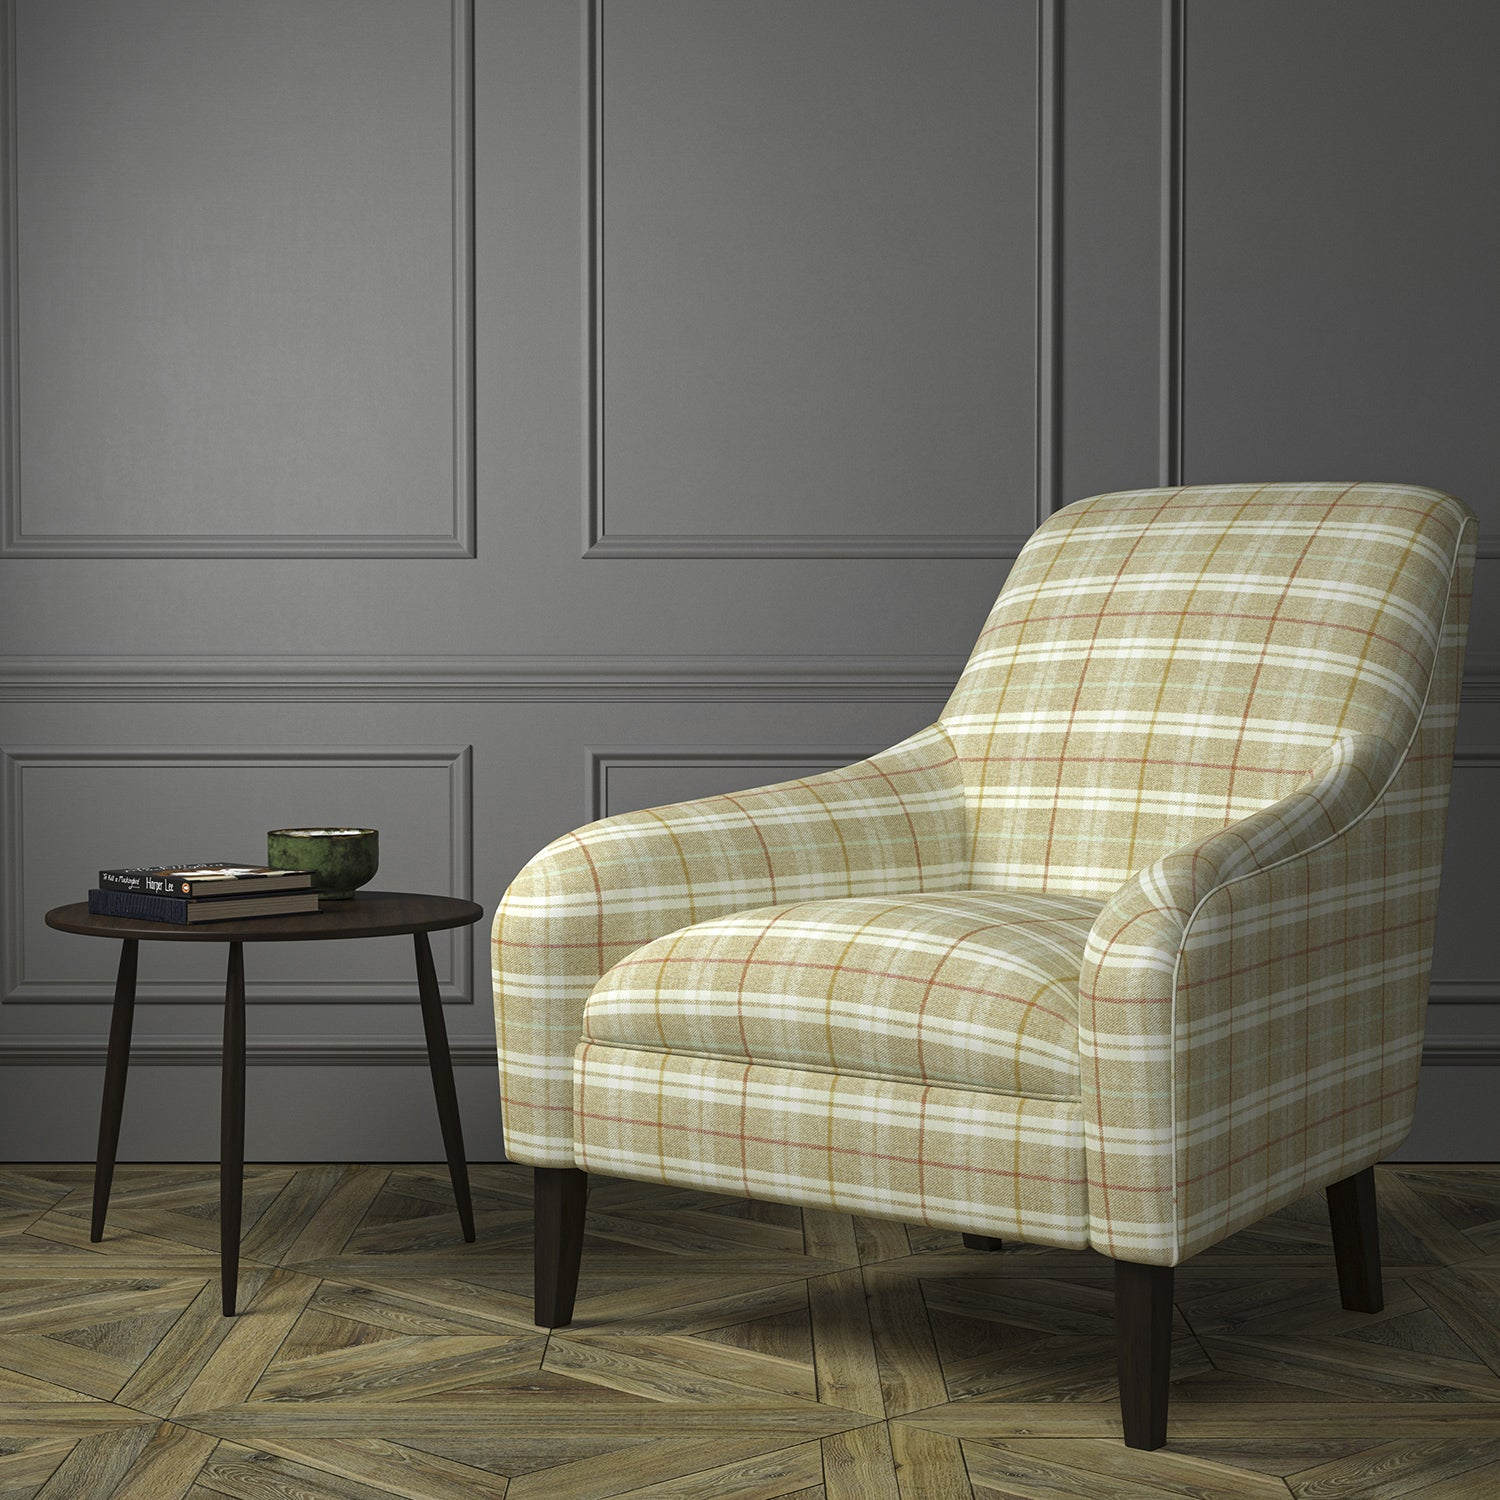 Chair upholstered in a cream Scottish wool plaid check fabric